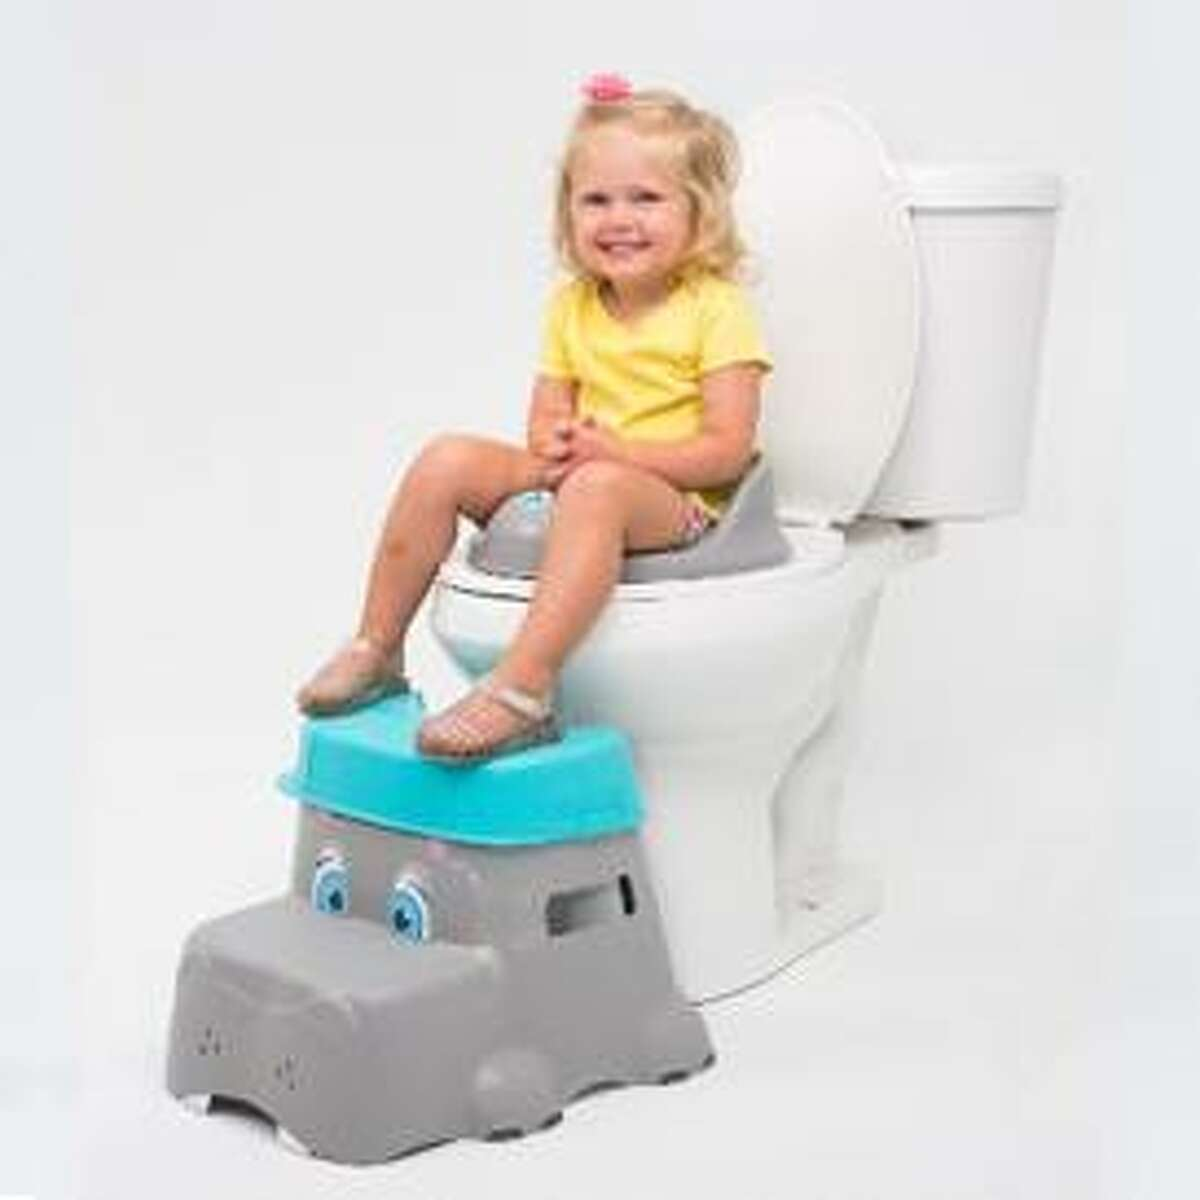 Squatty Potty is recalling about 2,400 children's toilet step stools because the top removable step which looks like a hat can detach while a child is standing on it, posing a fall hazard. Photo courtesy of the Consumer Product Safety Commission.